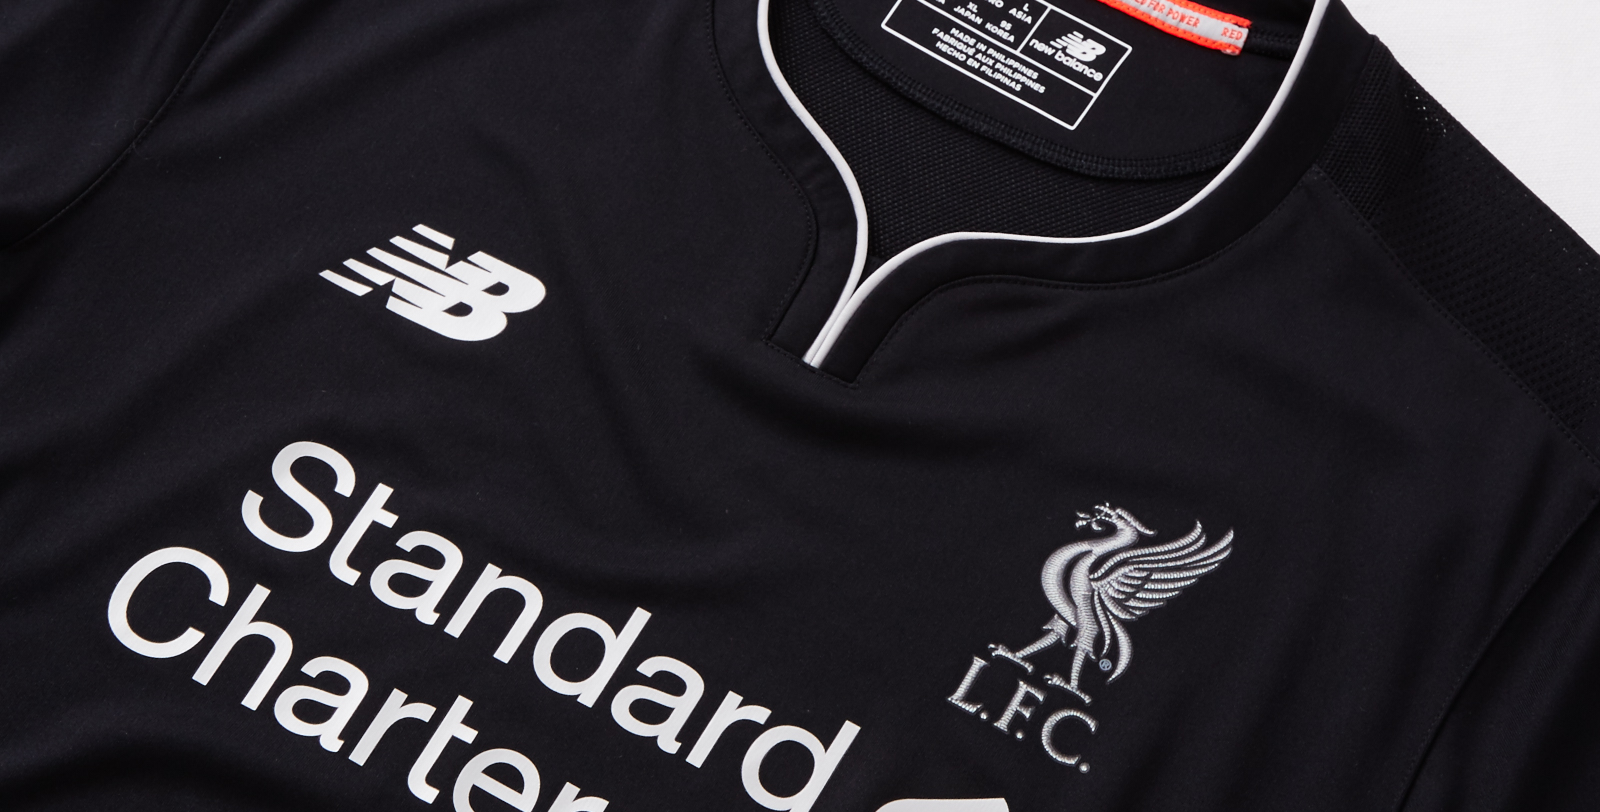 NB_Licence_Liverpool_Away_Kit_2016-17 Shirt Chest